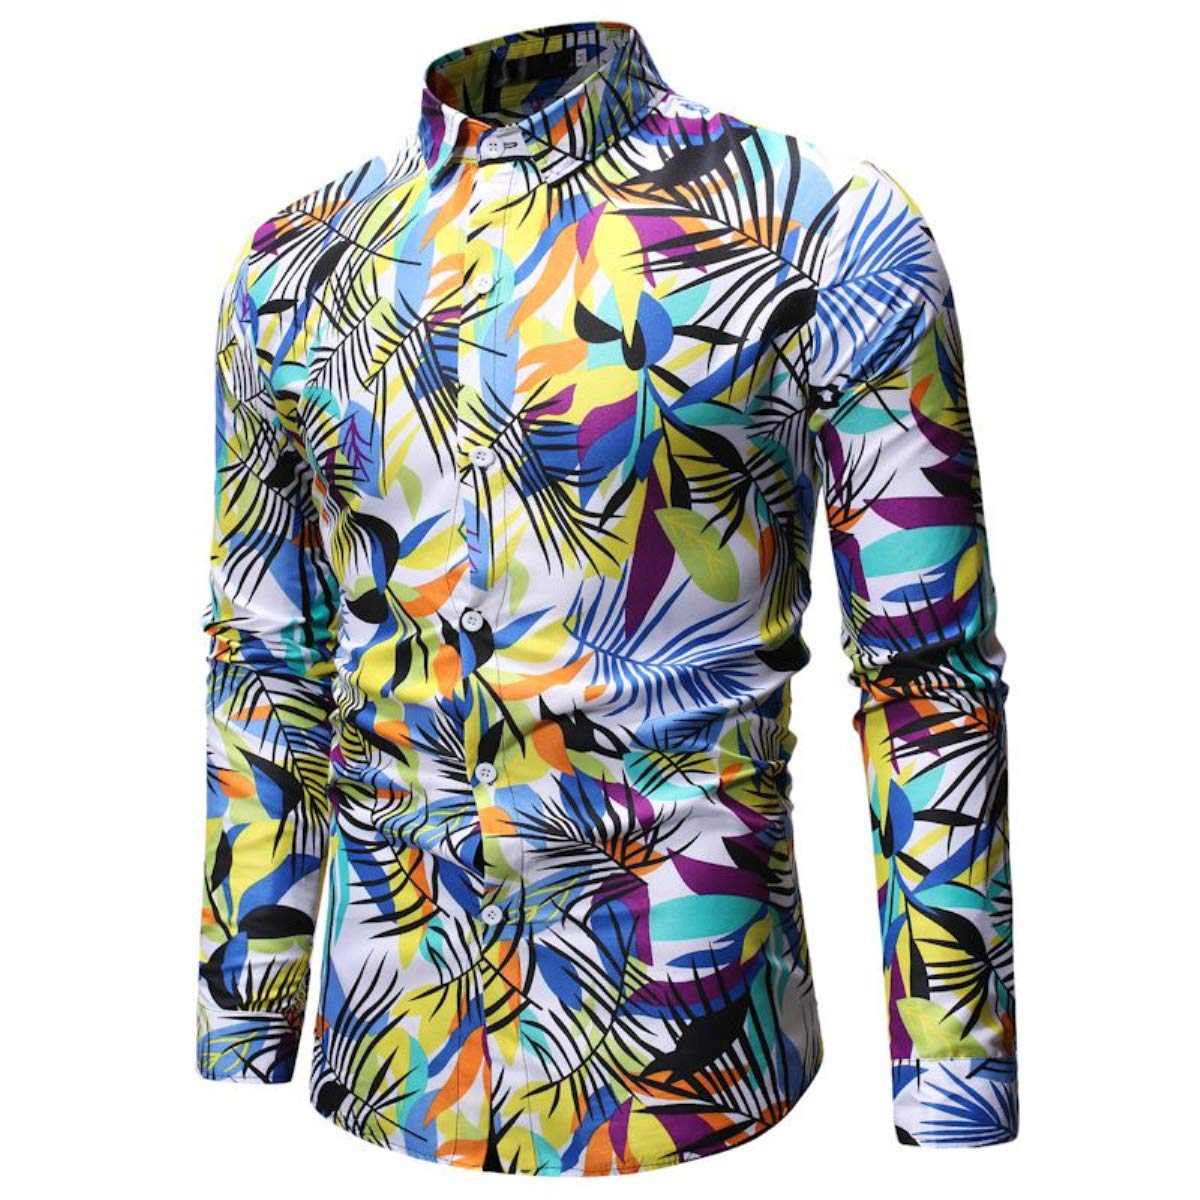 Men's Fashion Hip Hop Dress Shirt Long Sleeve Lapel Floral Print Slim Fit Casual Button Shirt Tops Fmeijia White by Fmeijia (Image #4)